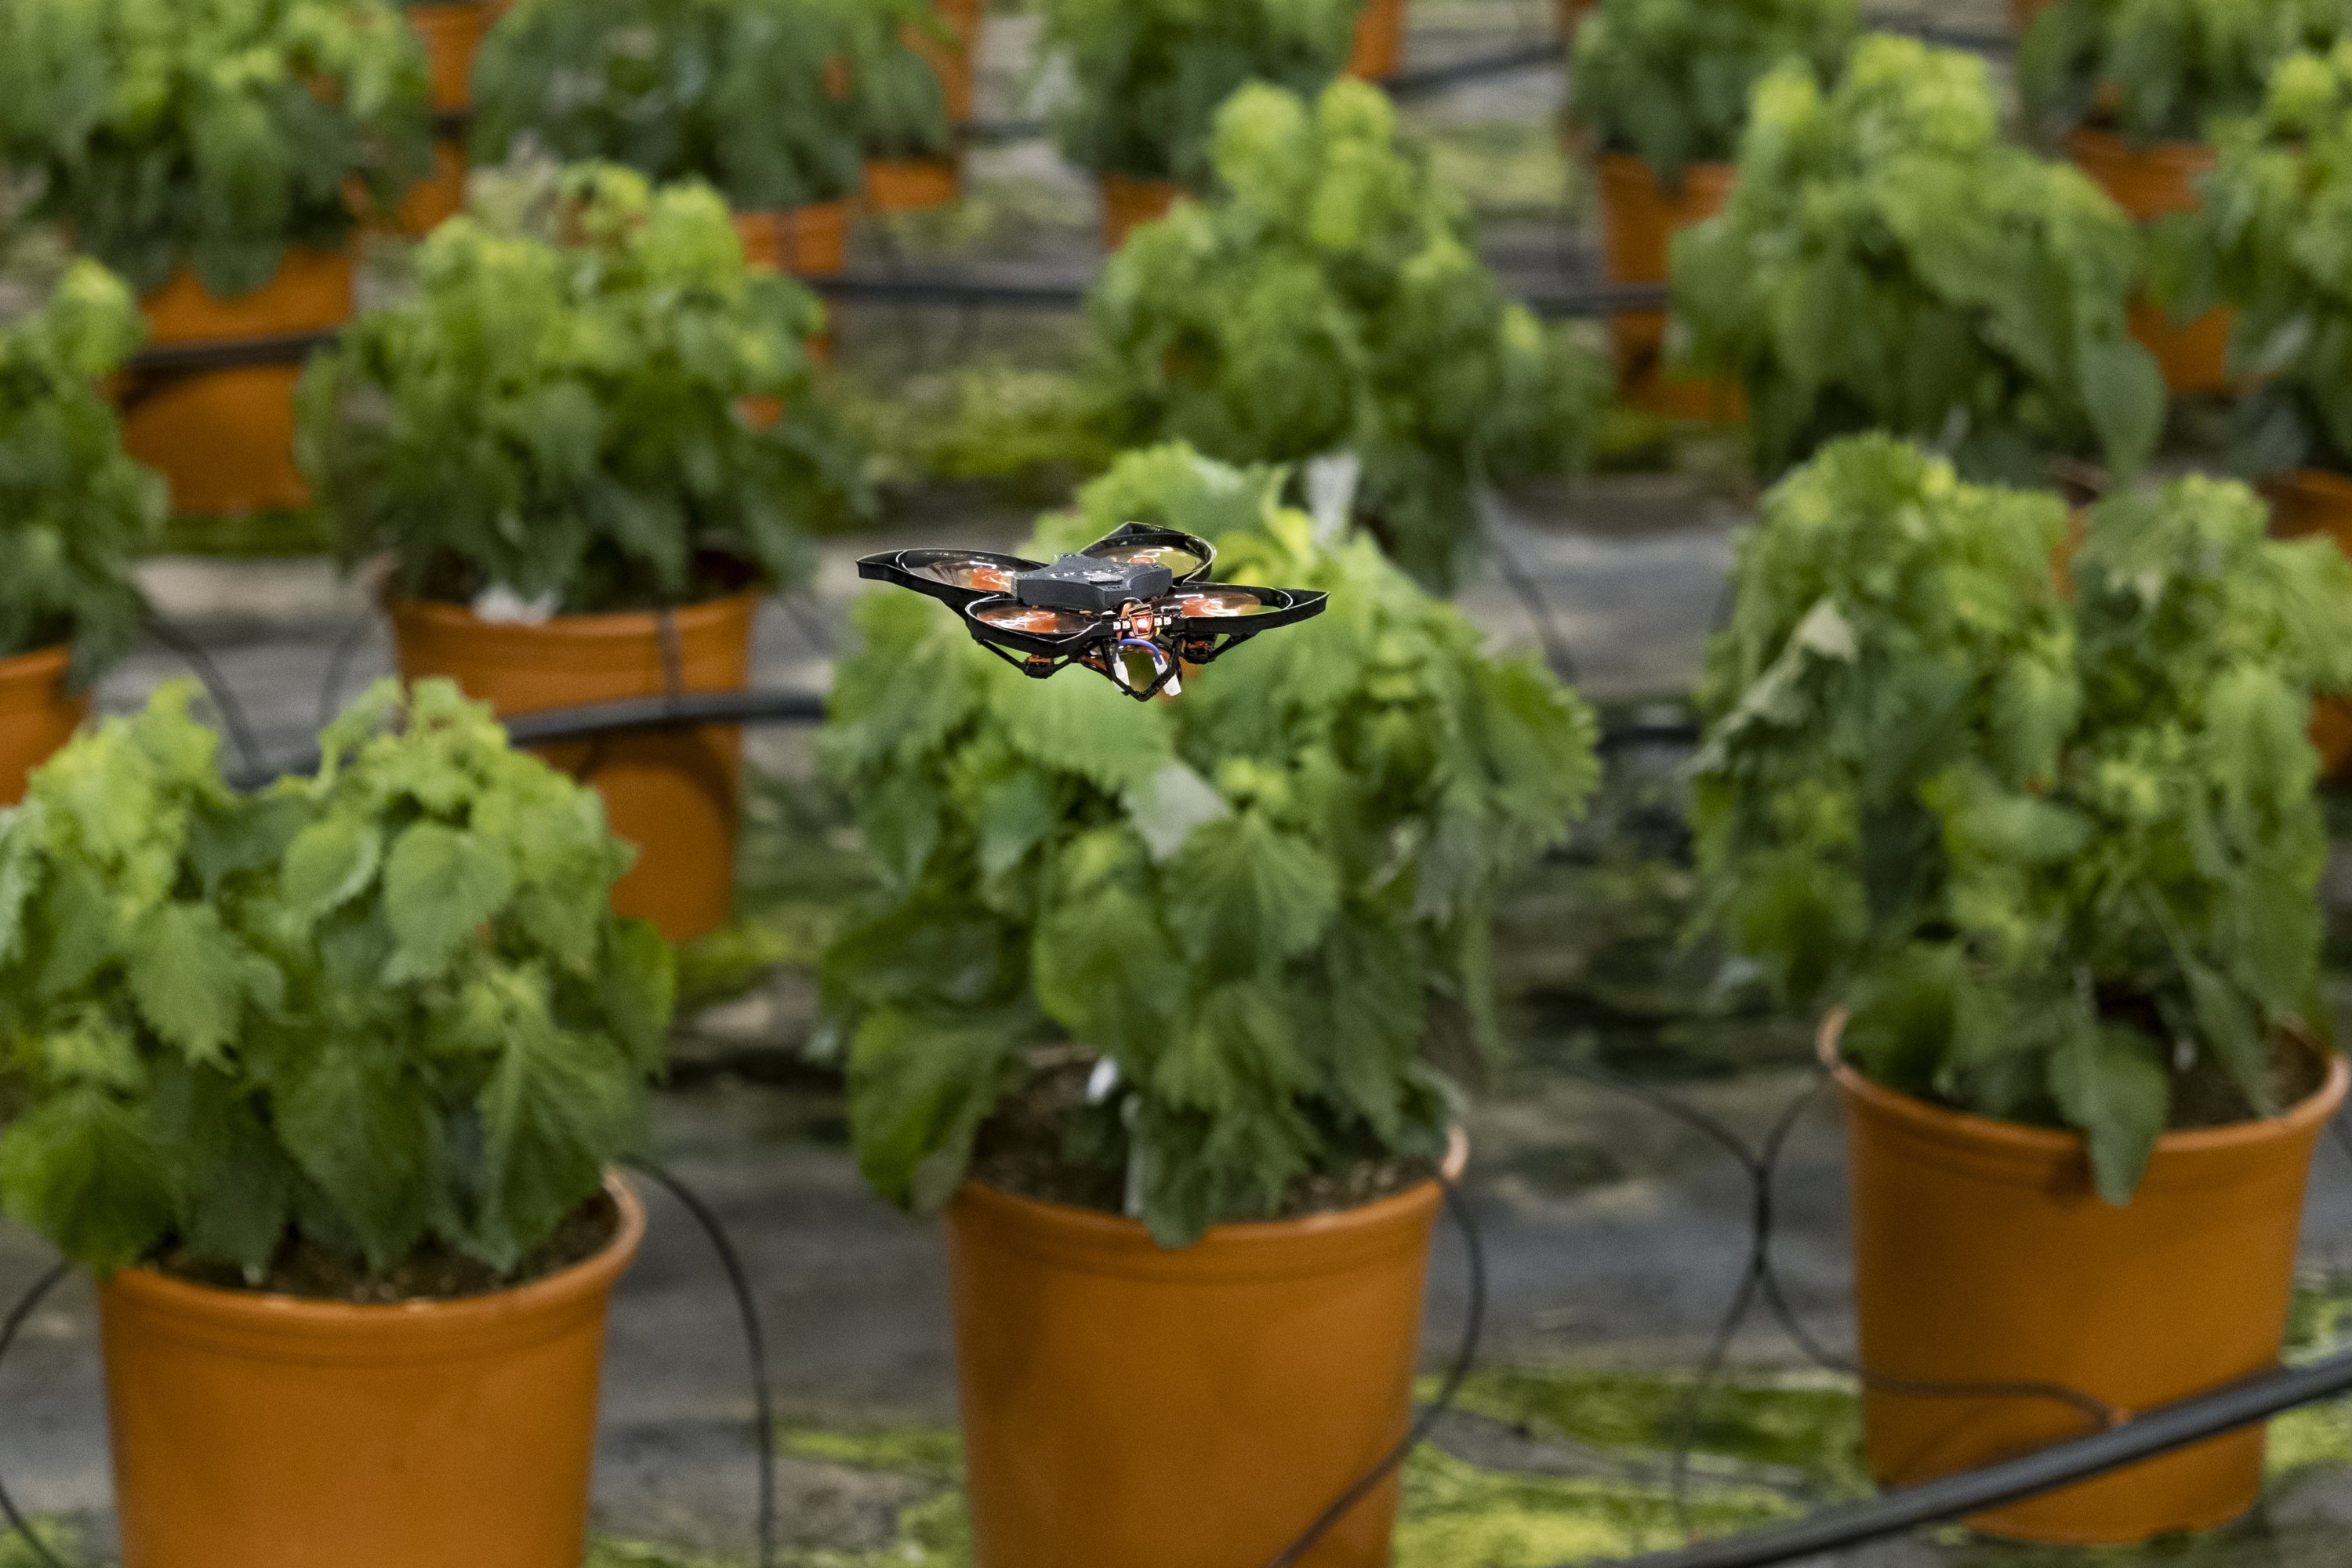 Drones vs hungry moths: Dutch use hi-tech to protect crops...